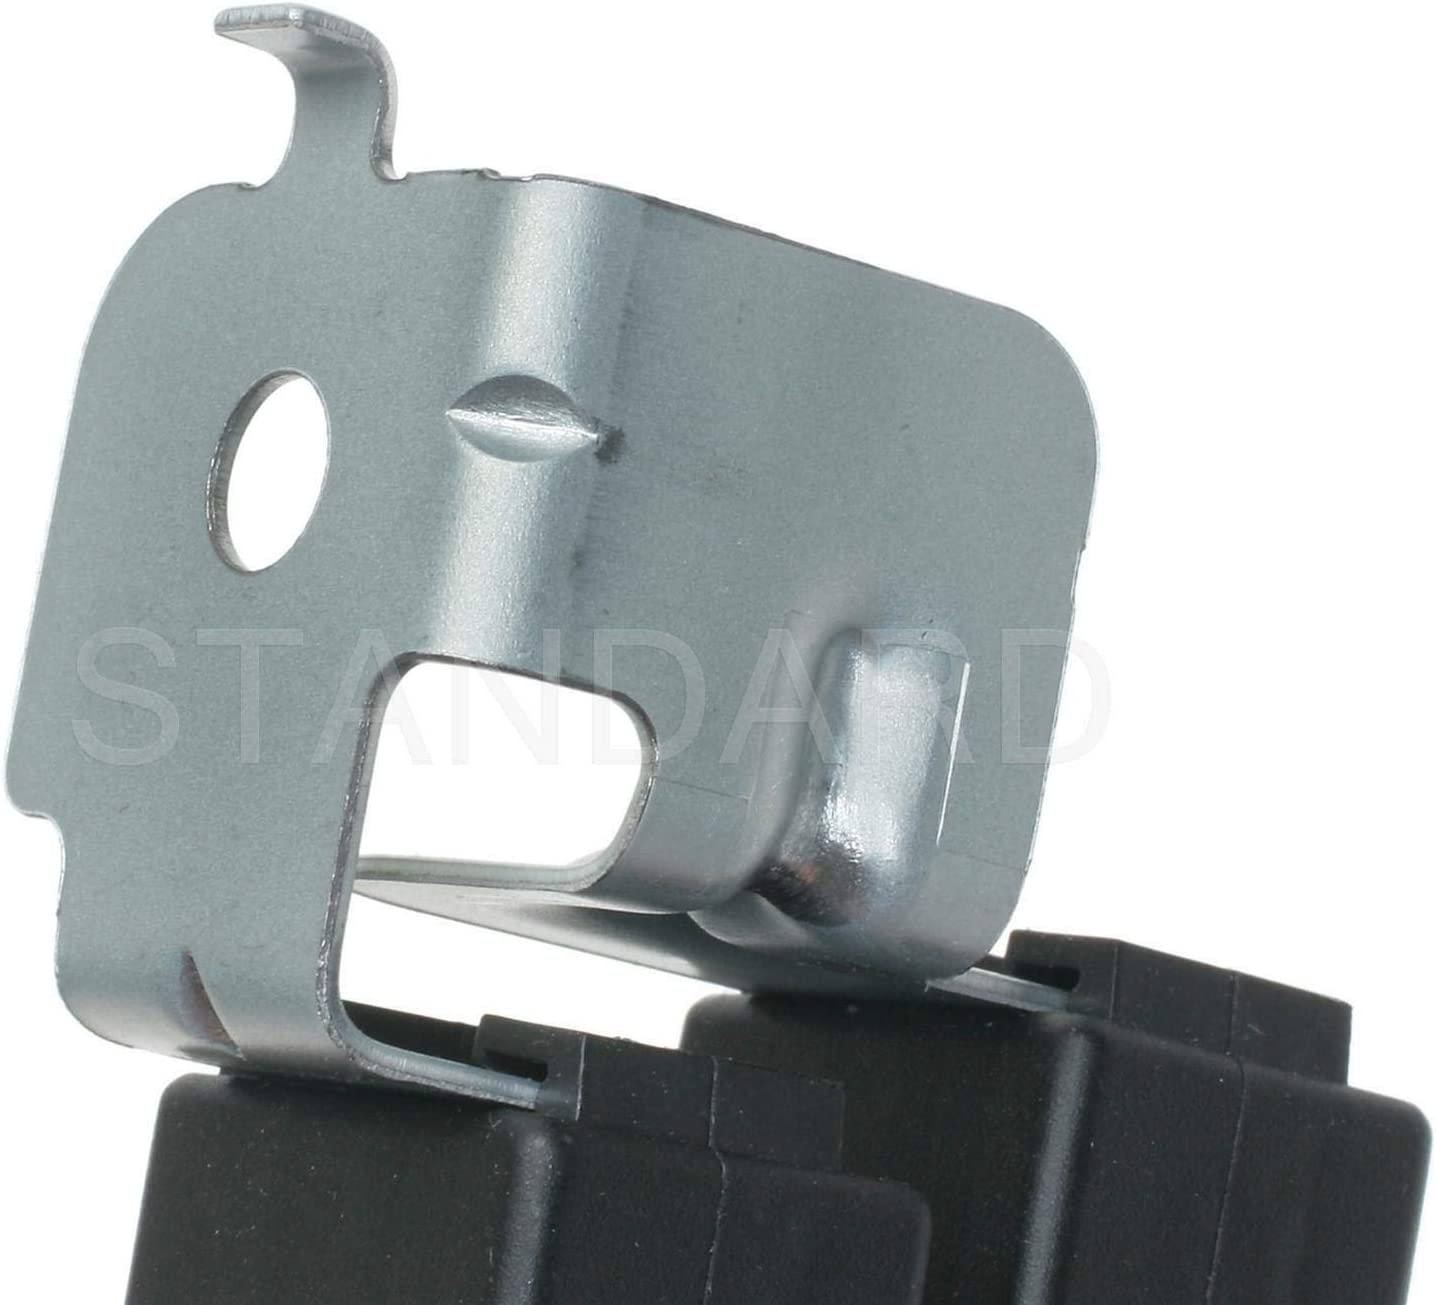 Standard Motor Products RY422T Fuel Injection Main Relay